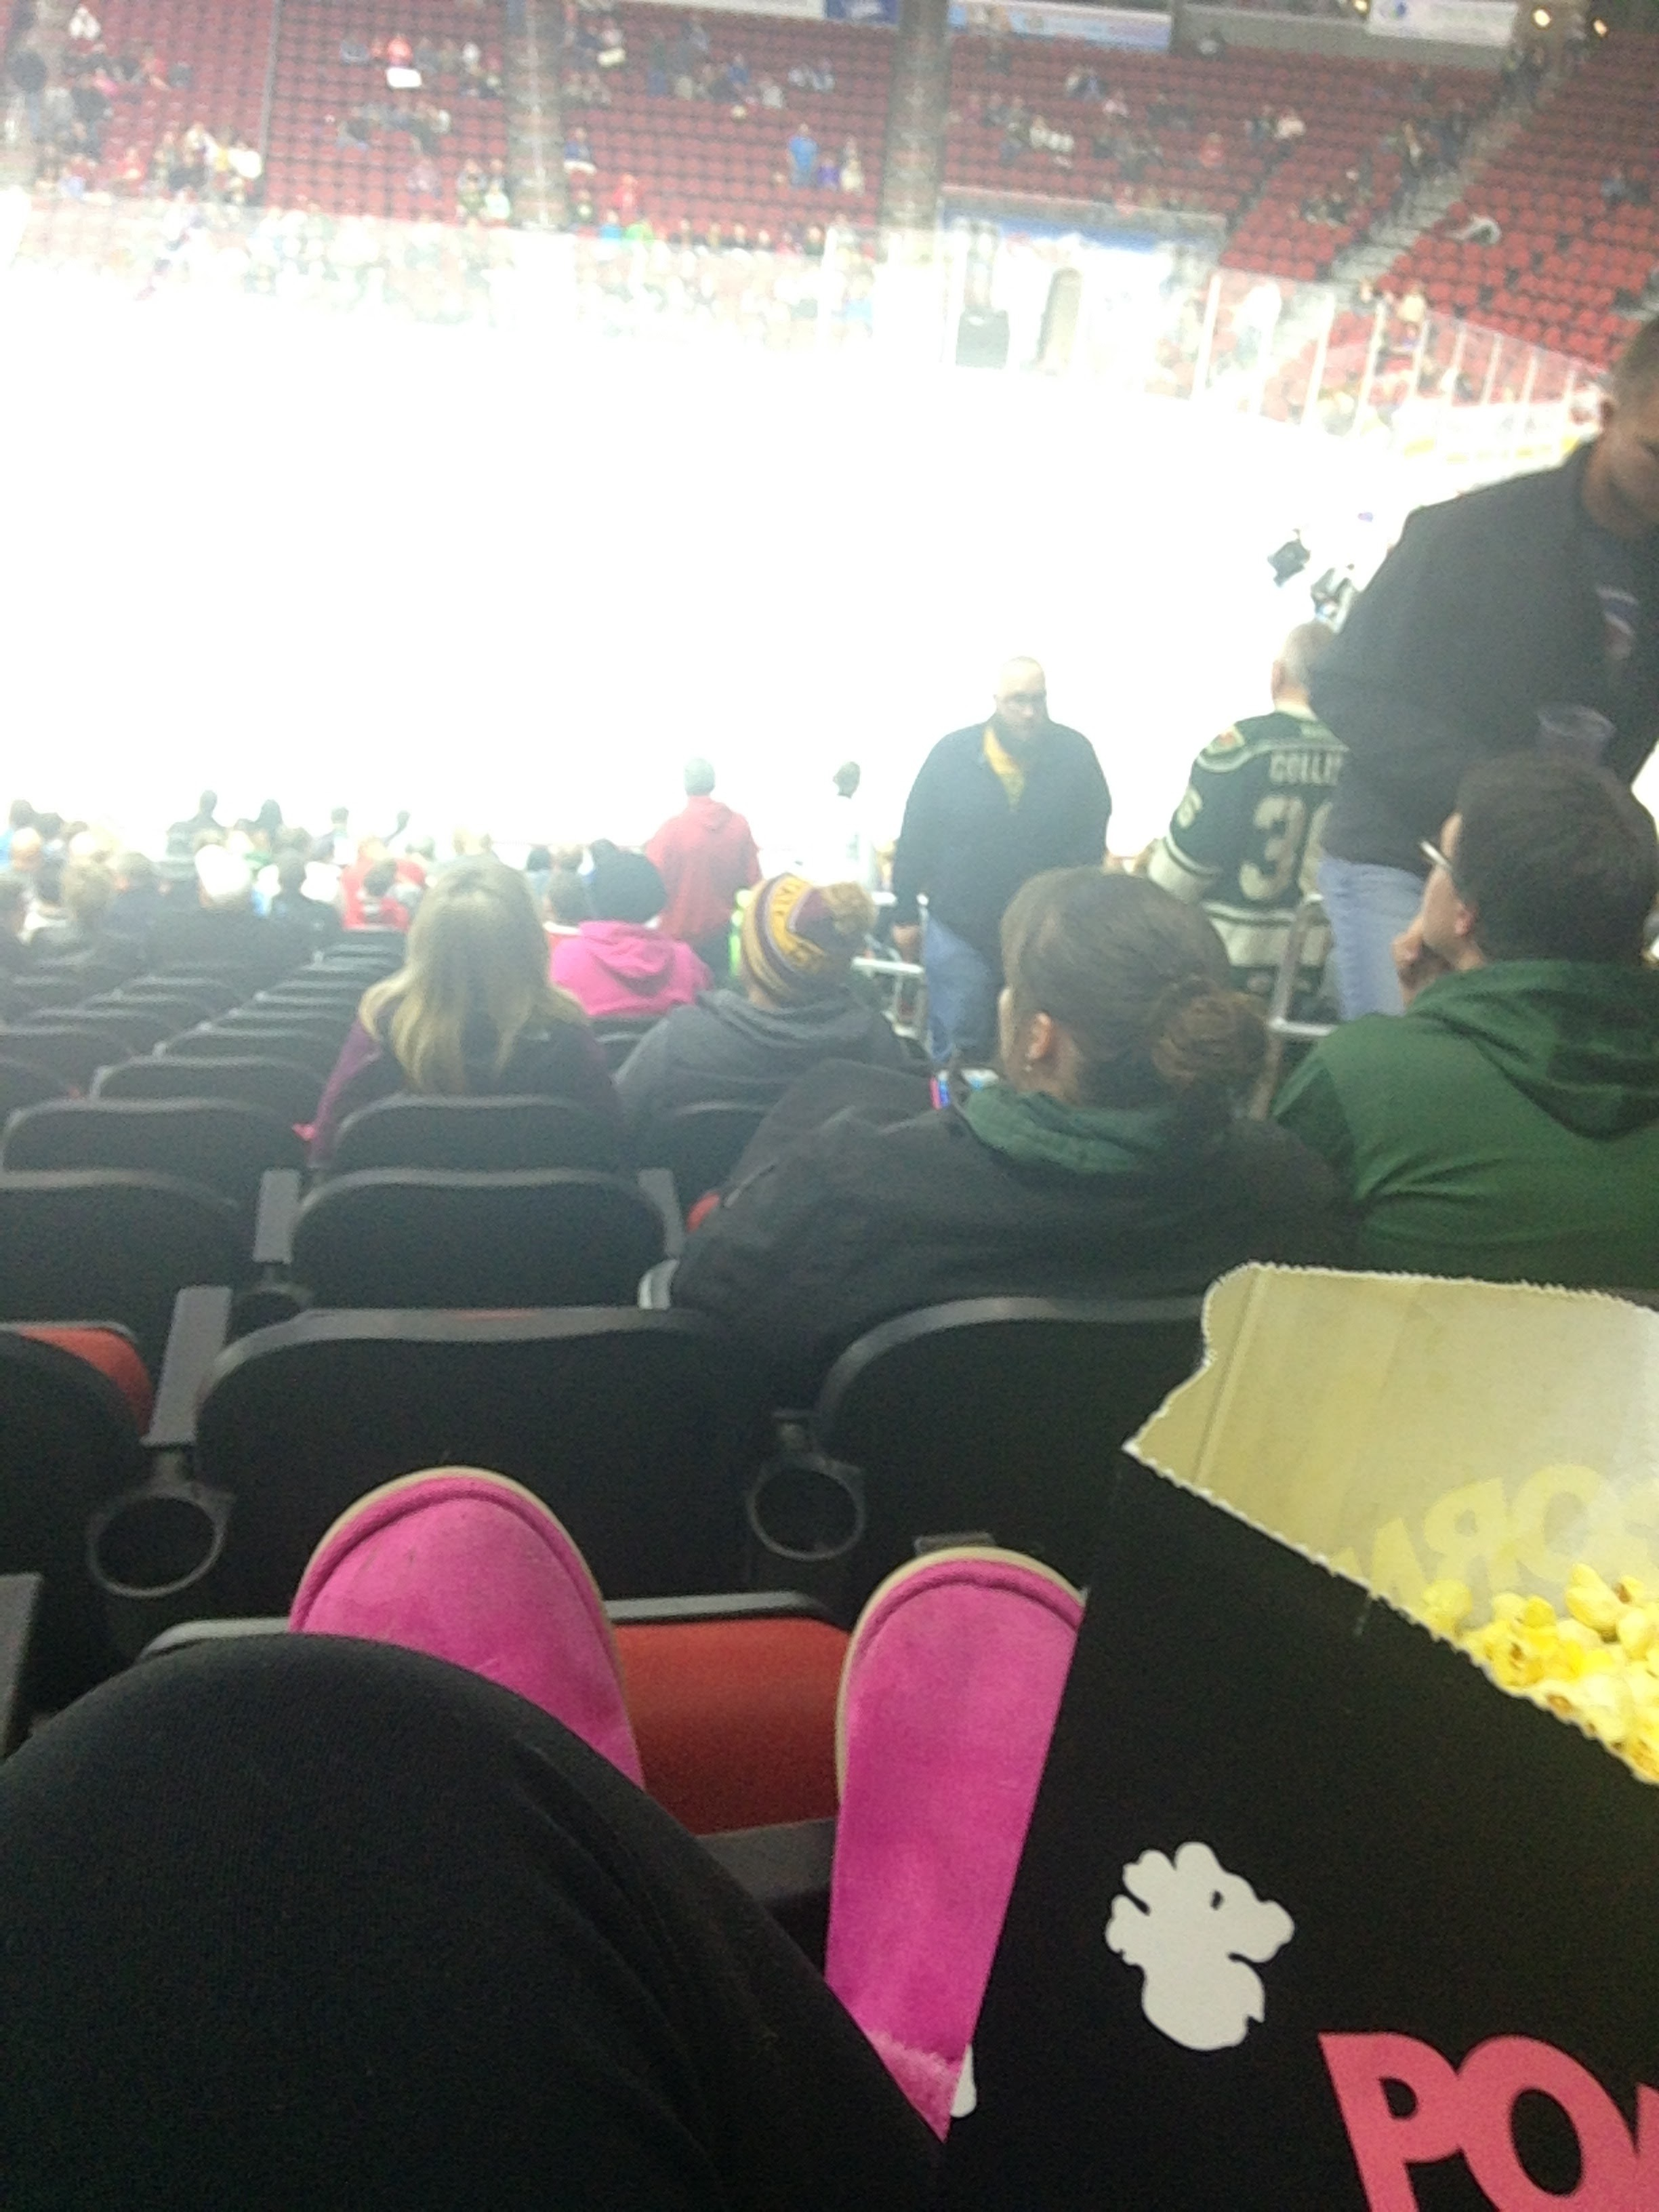 Ashlee-Popcorn-Watching-Hockey.jpg